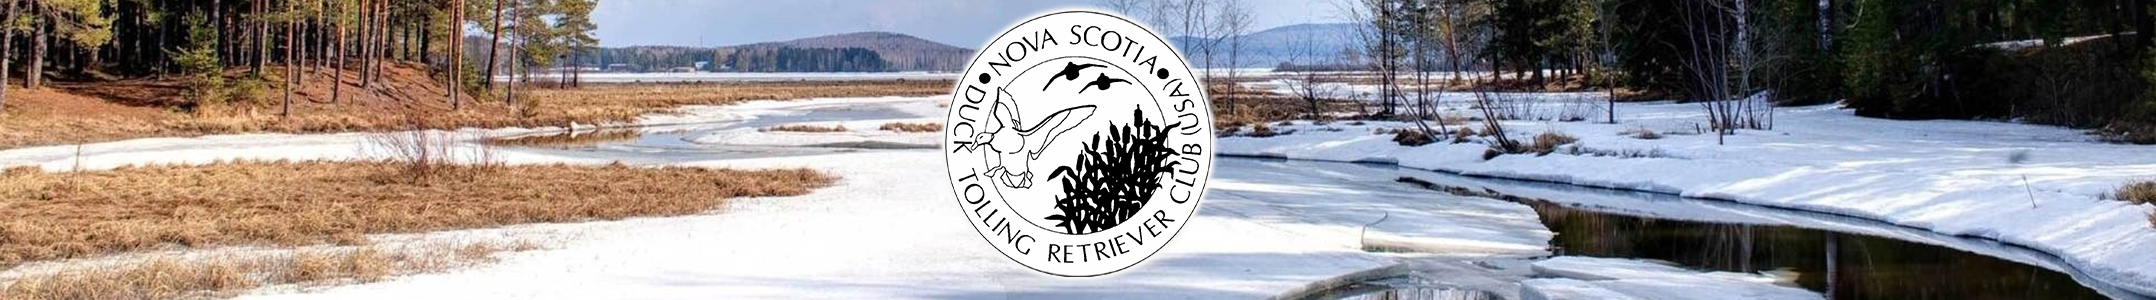 Nova Scotia Duck Tolling Retriever Club (USA)